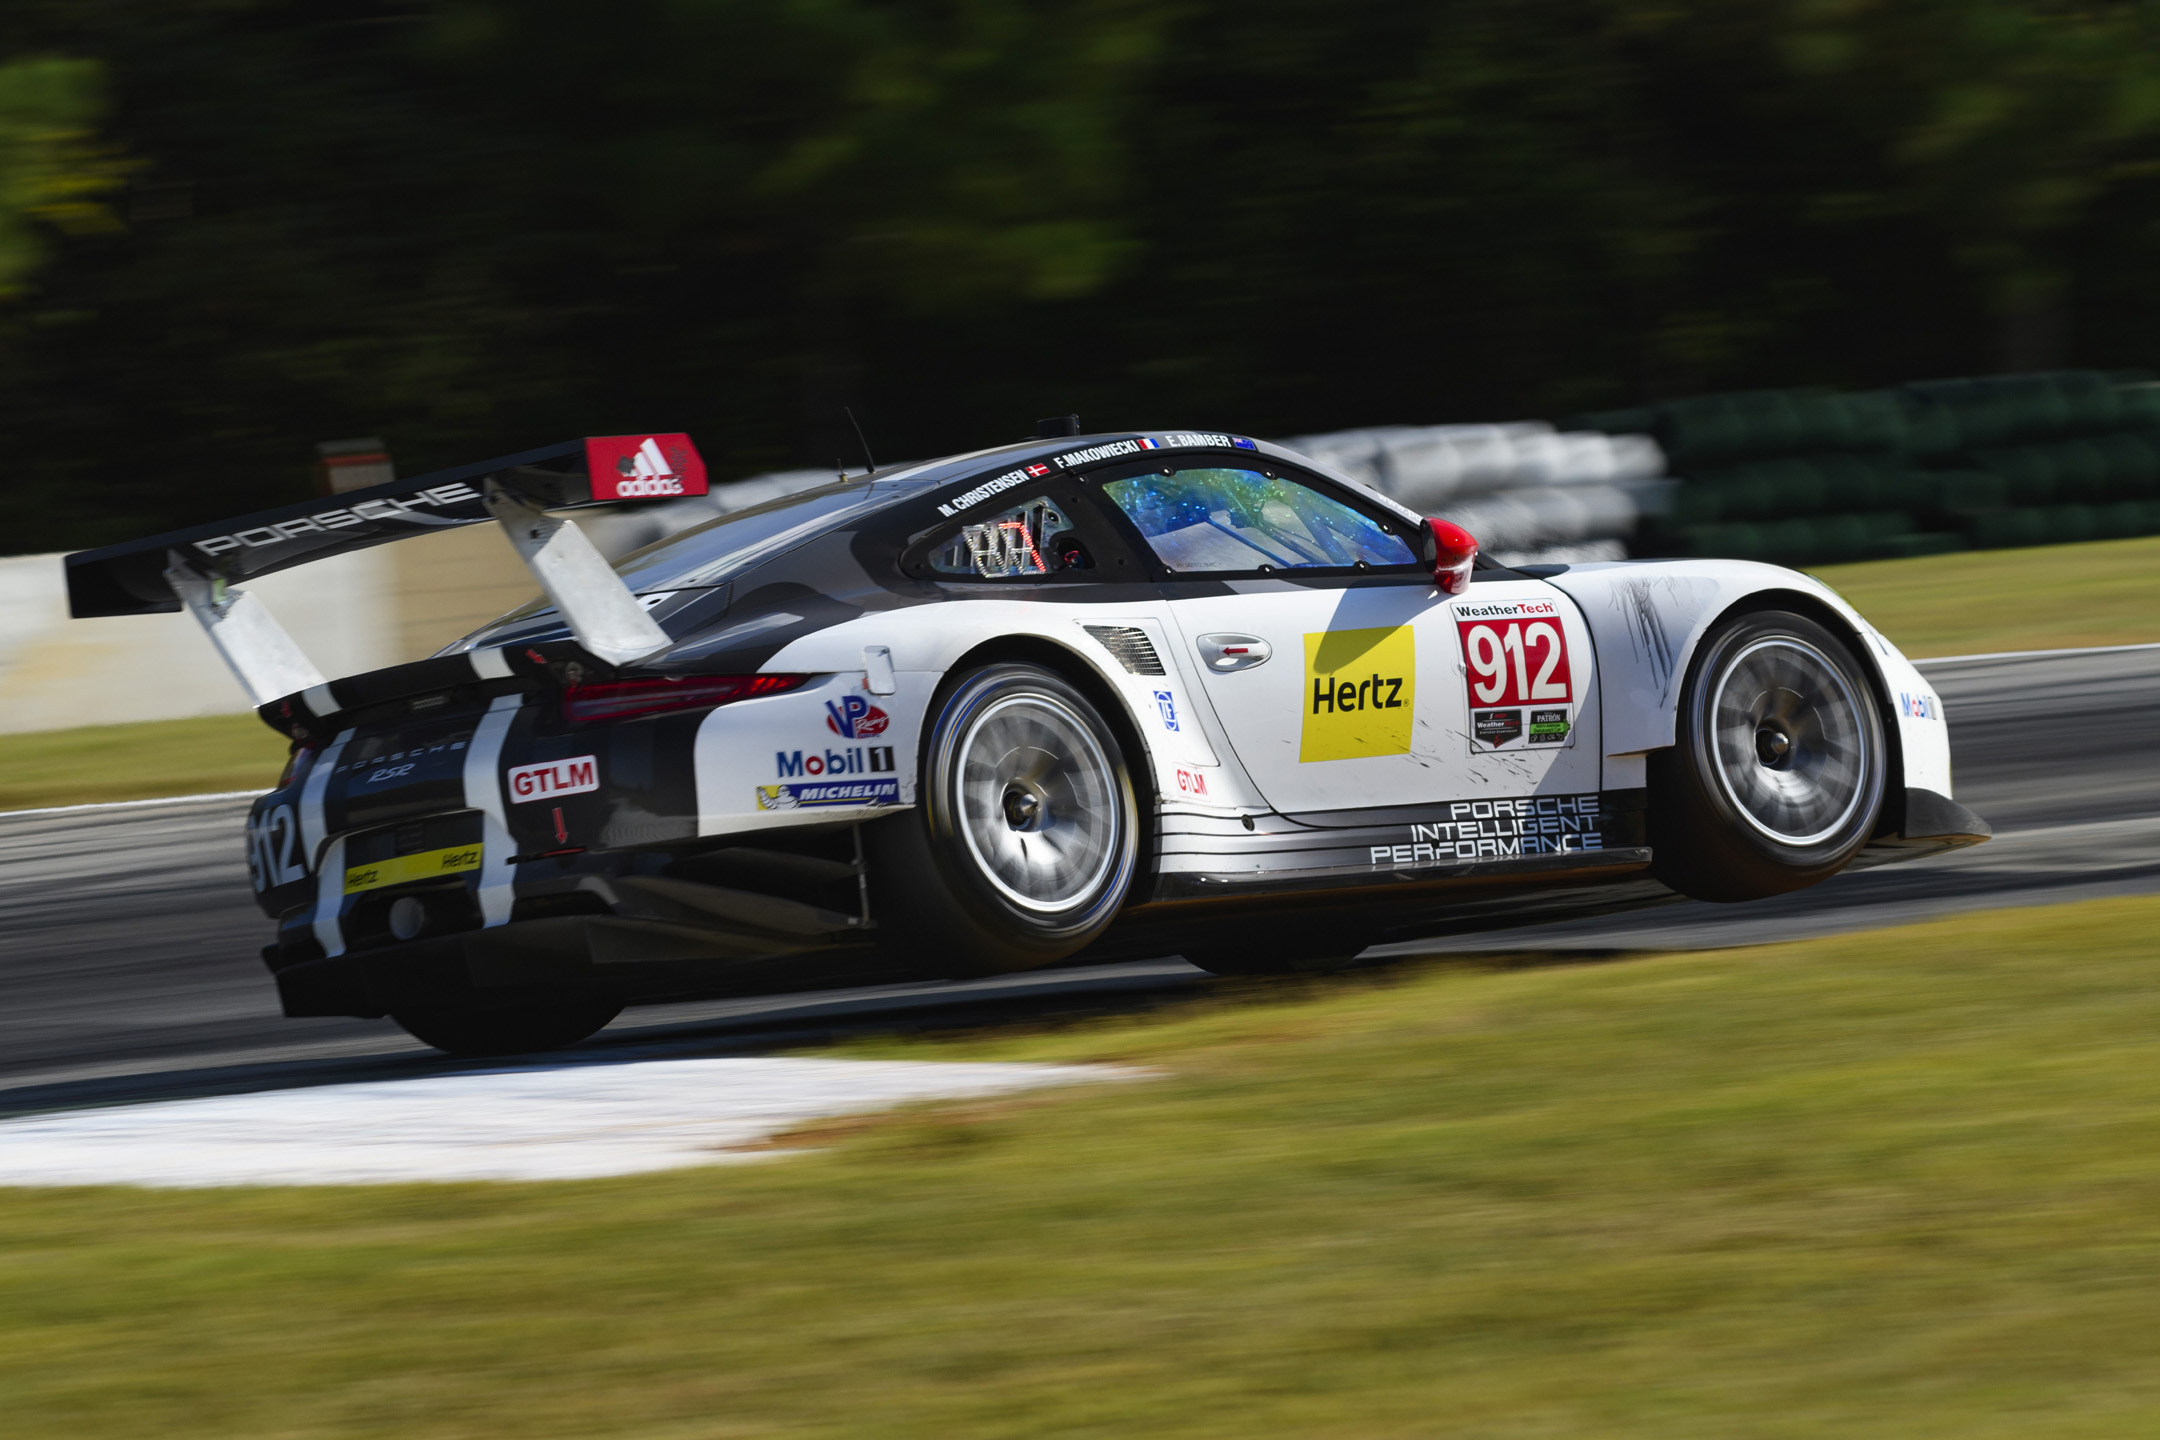 bbs wheels on porsche motorsports car action